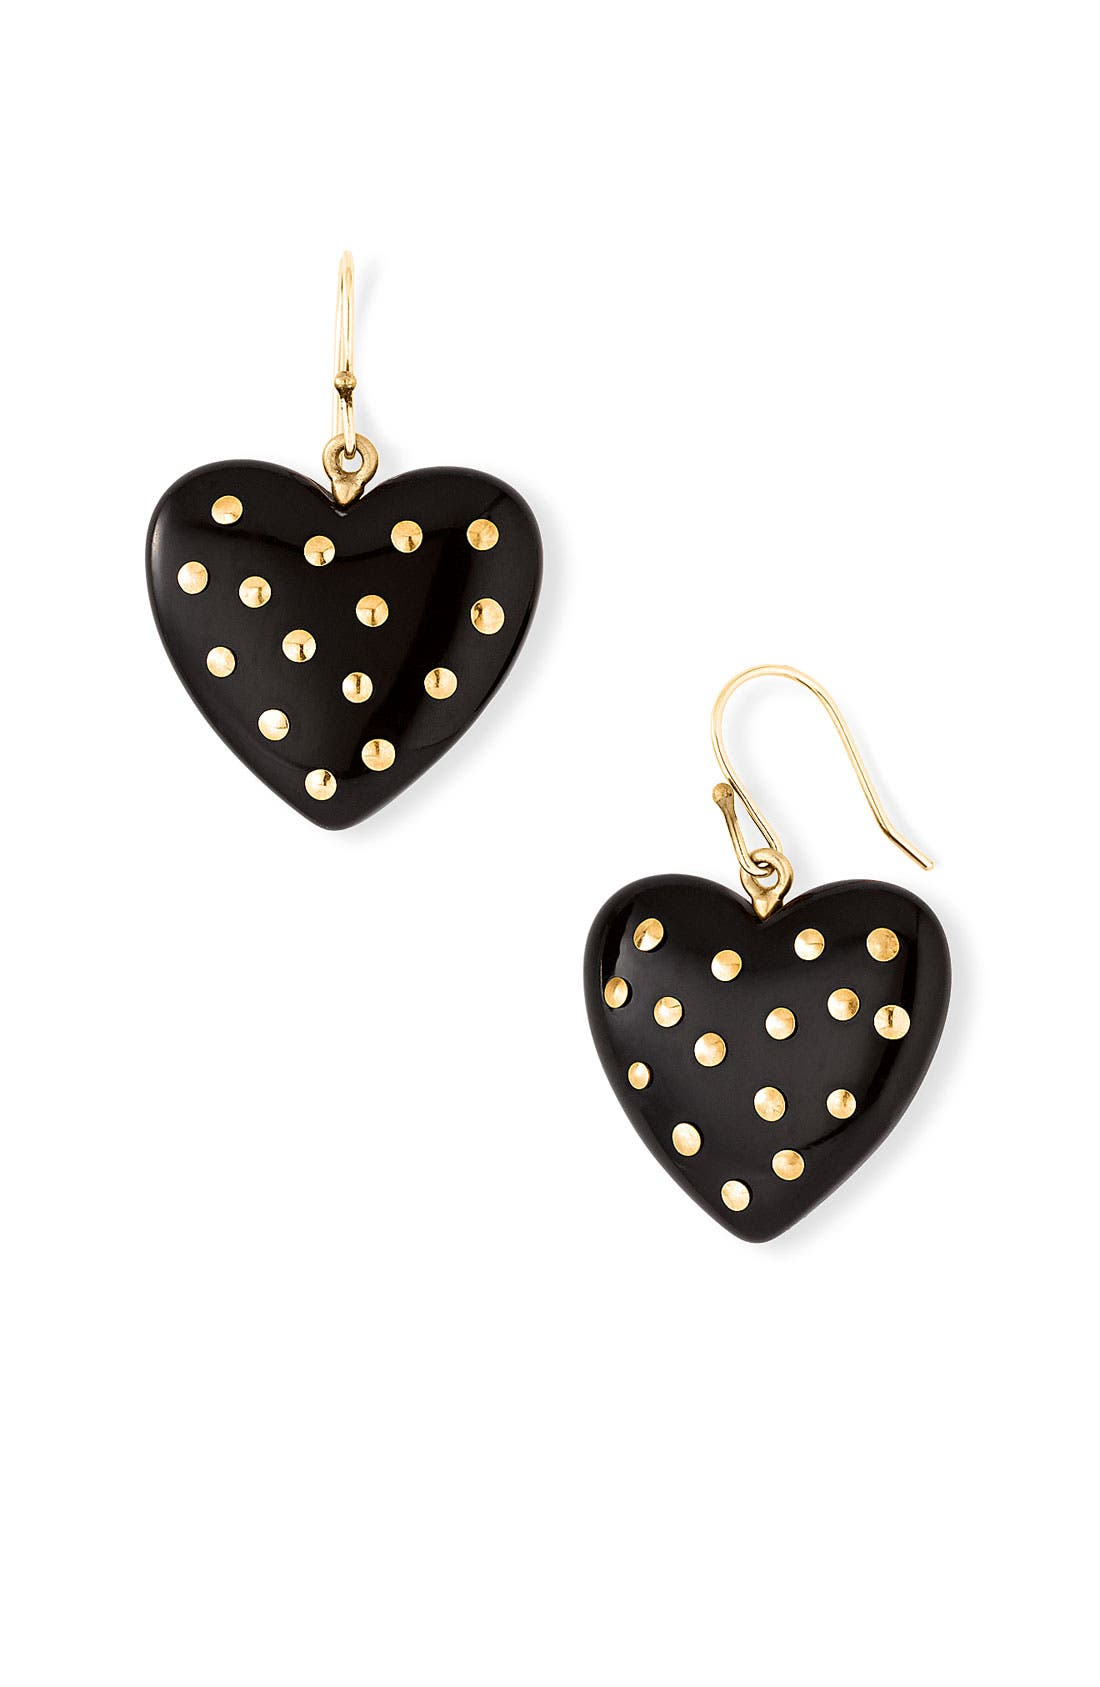 Main Image - MARC BY MARC JACOBS 'House of Cards' Studded Heart Earrings